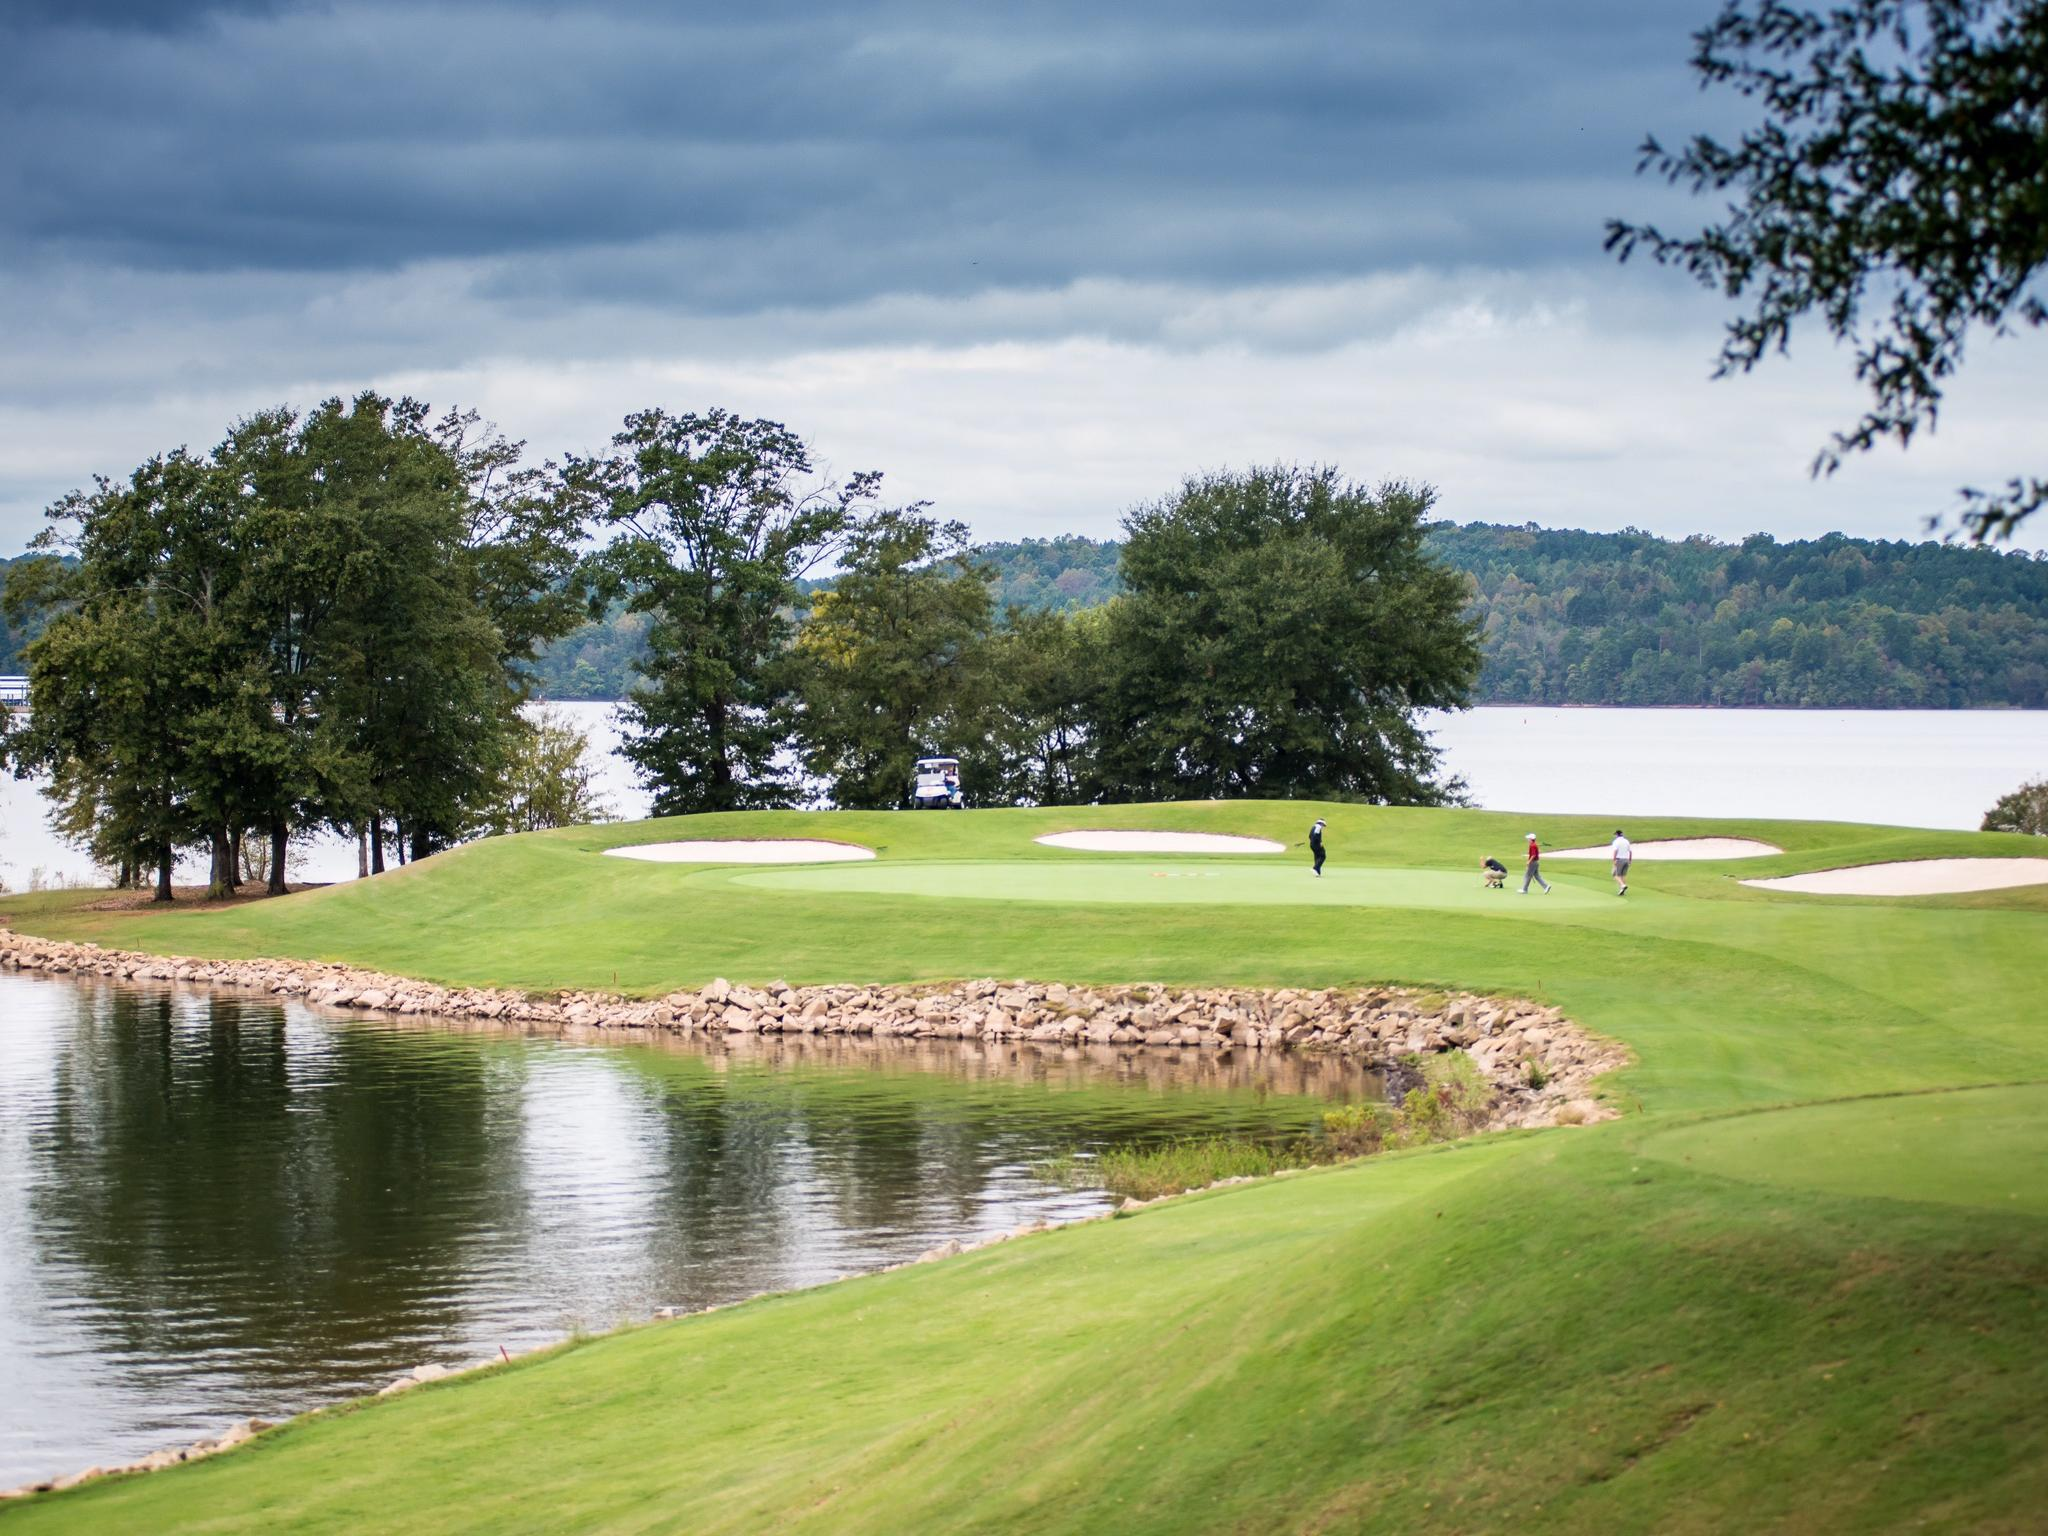 people playing on golf course hole with view of lake